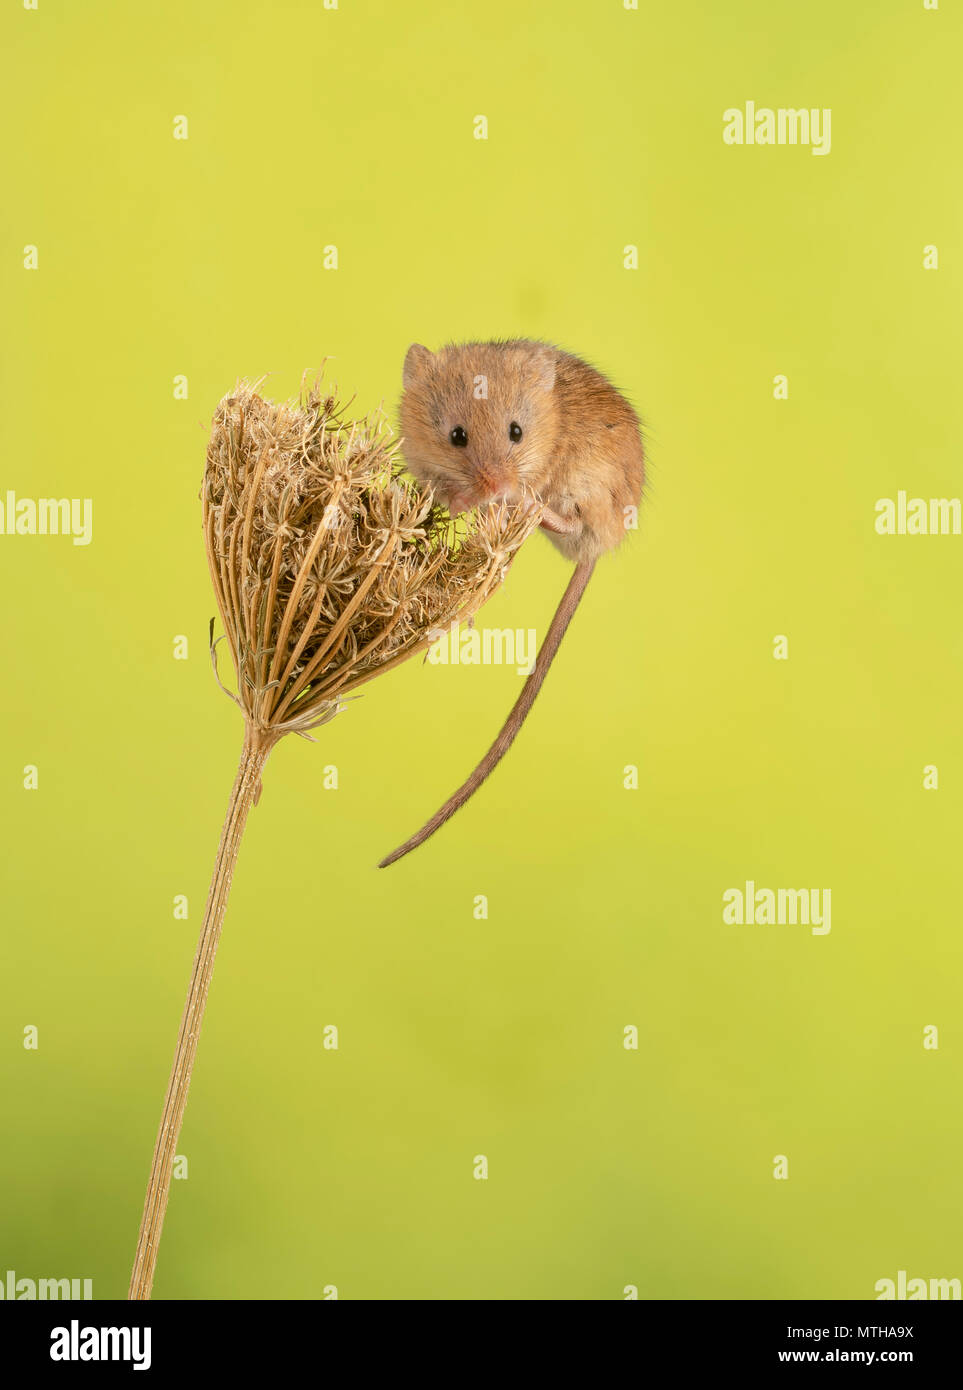 harvest mouse climbing in a studio set up - Stock Image